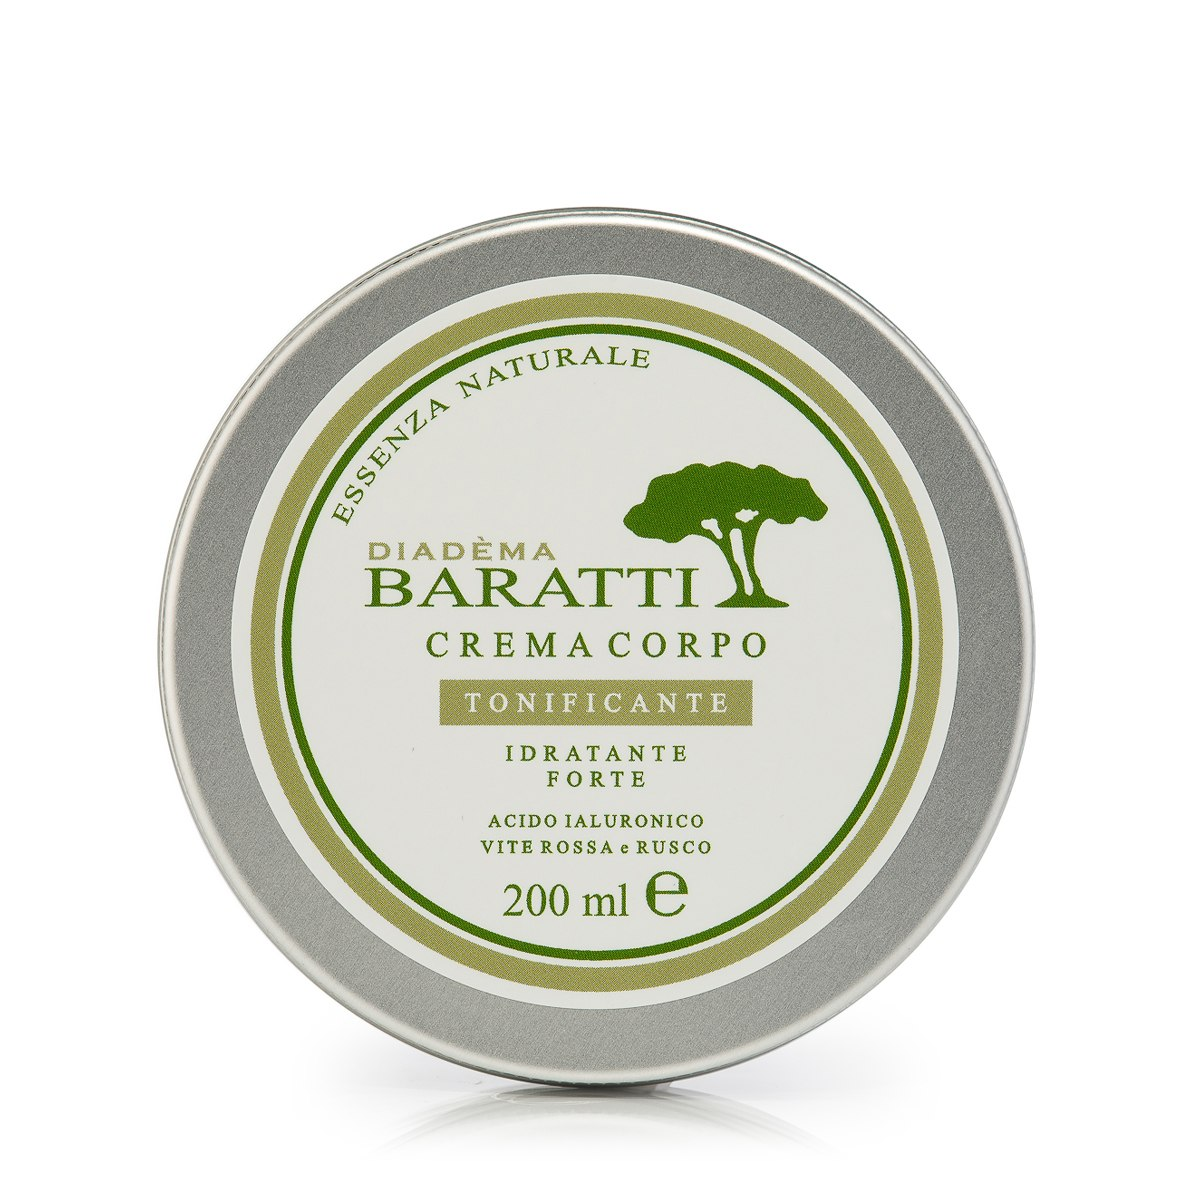 Baratti - Body cream by Diadema